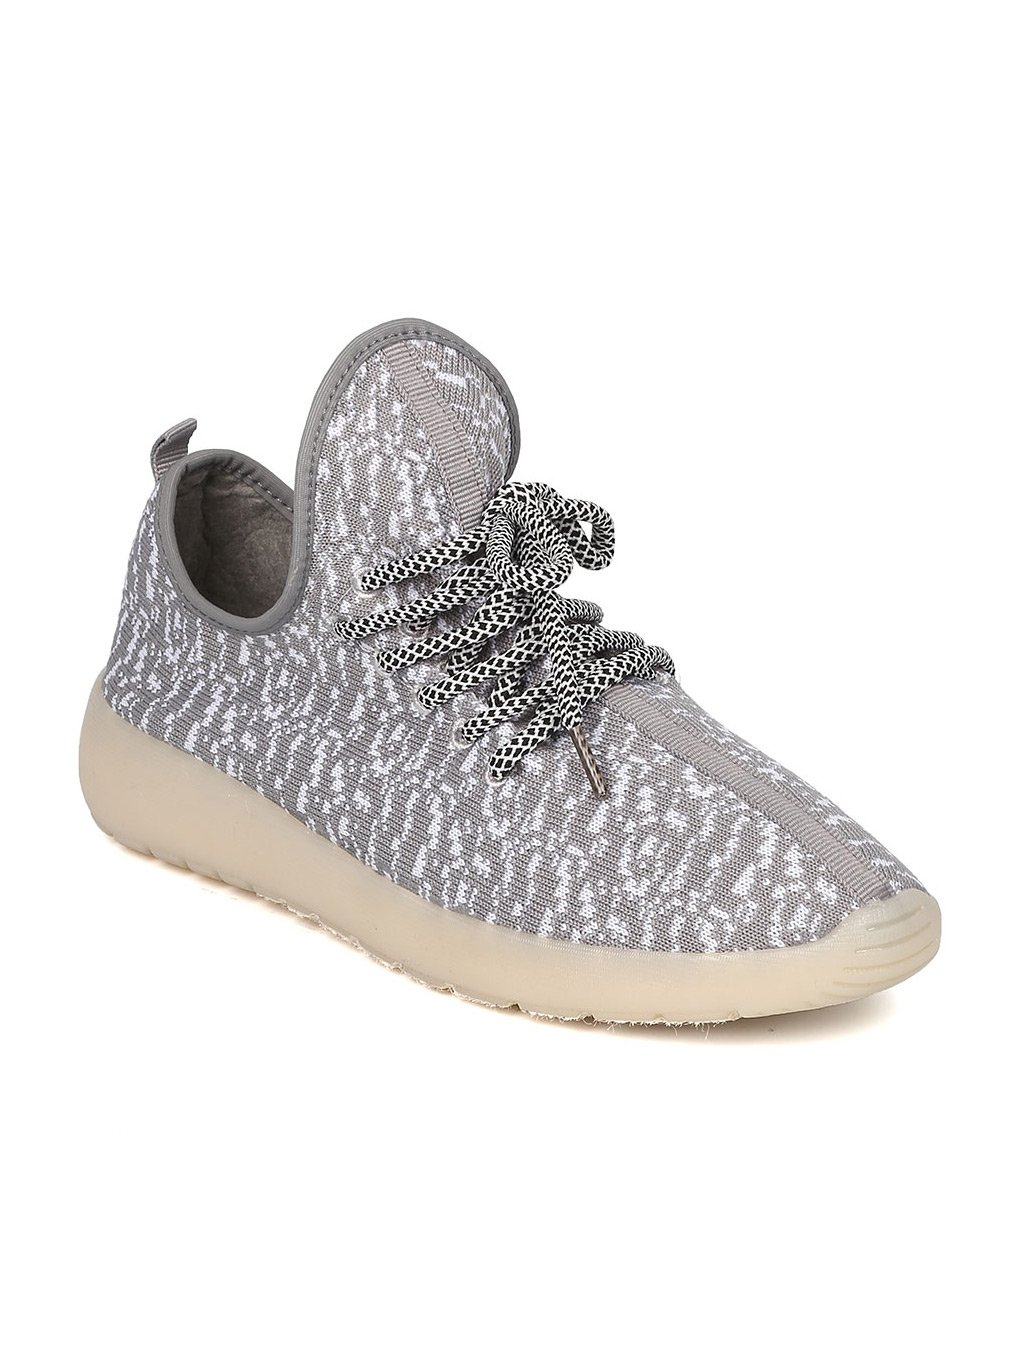 Kids Fabric Two Tone Lace Up Light Up Chargeable Jogger Sneaker GF45 - Grey (Size: Big Kid 4)